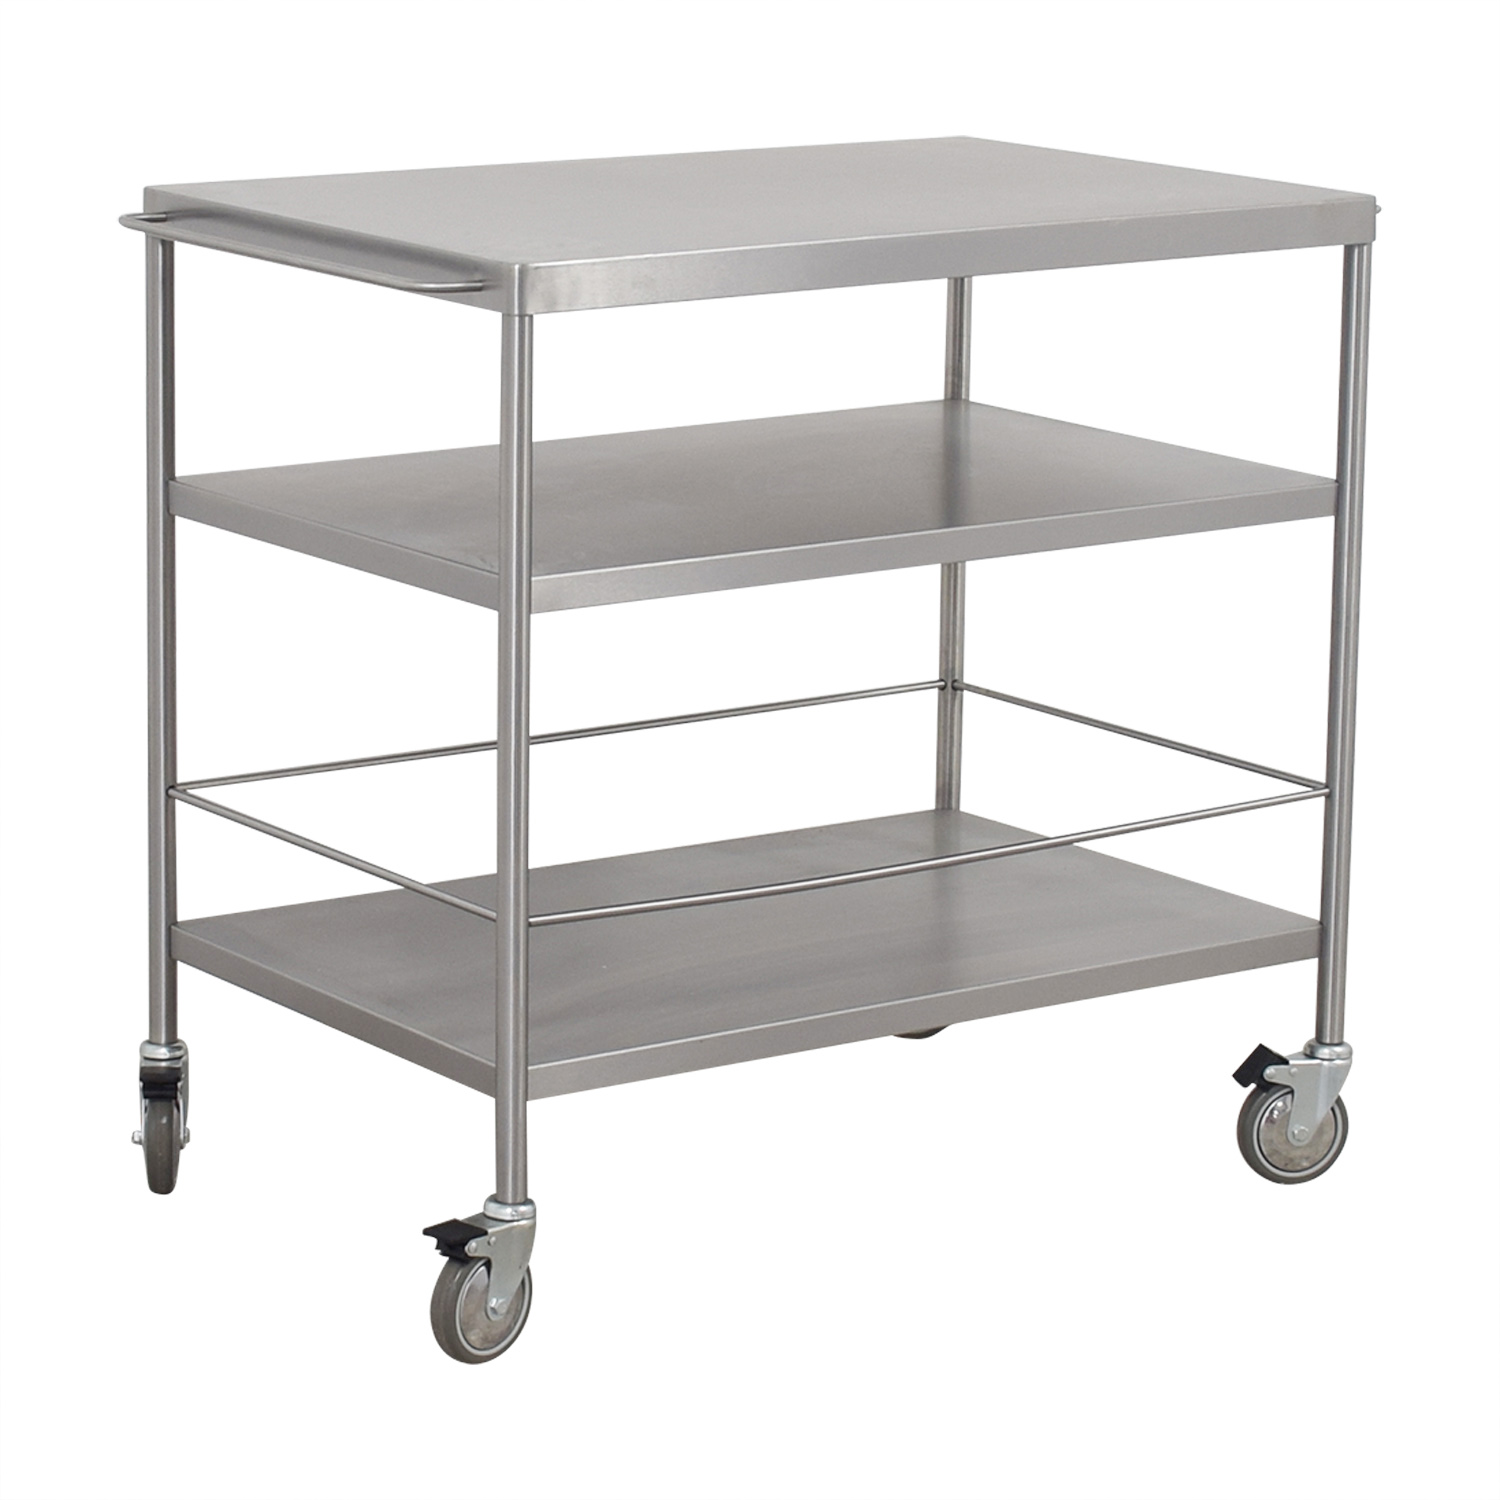 Ikea Tables Kitchen: IKEA IKEA Stainless Steel Kitchen Cart / Tables